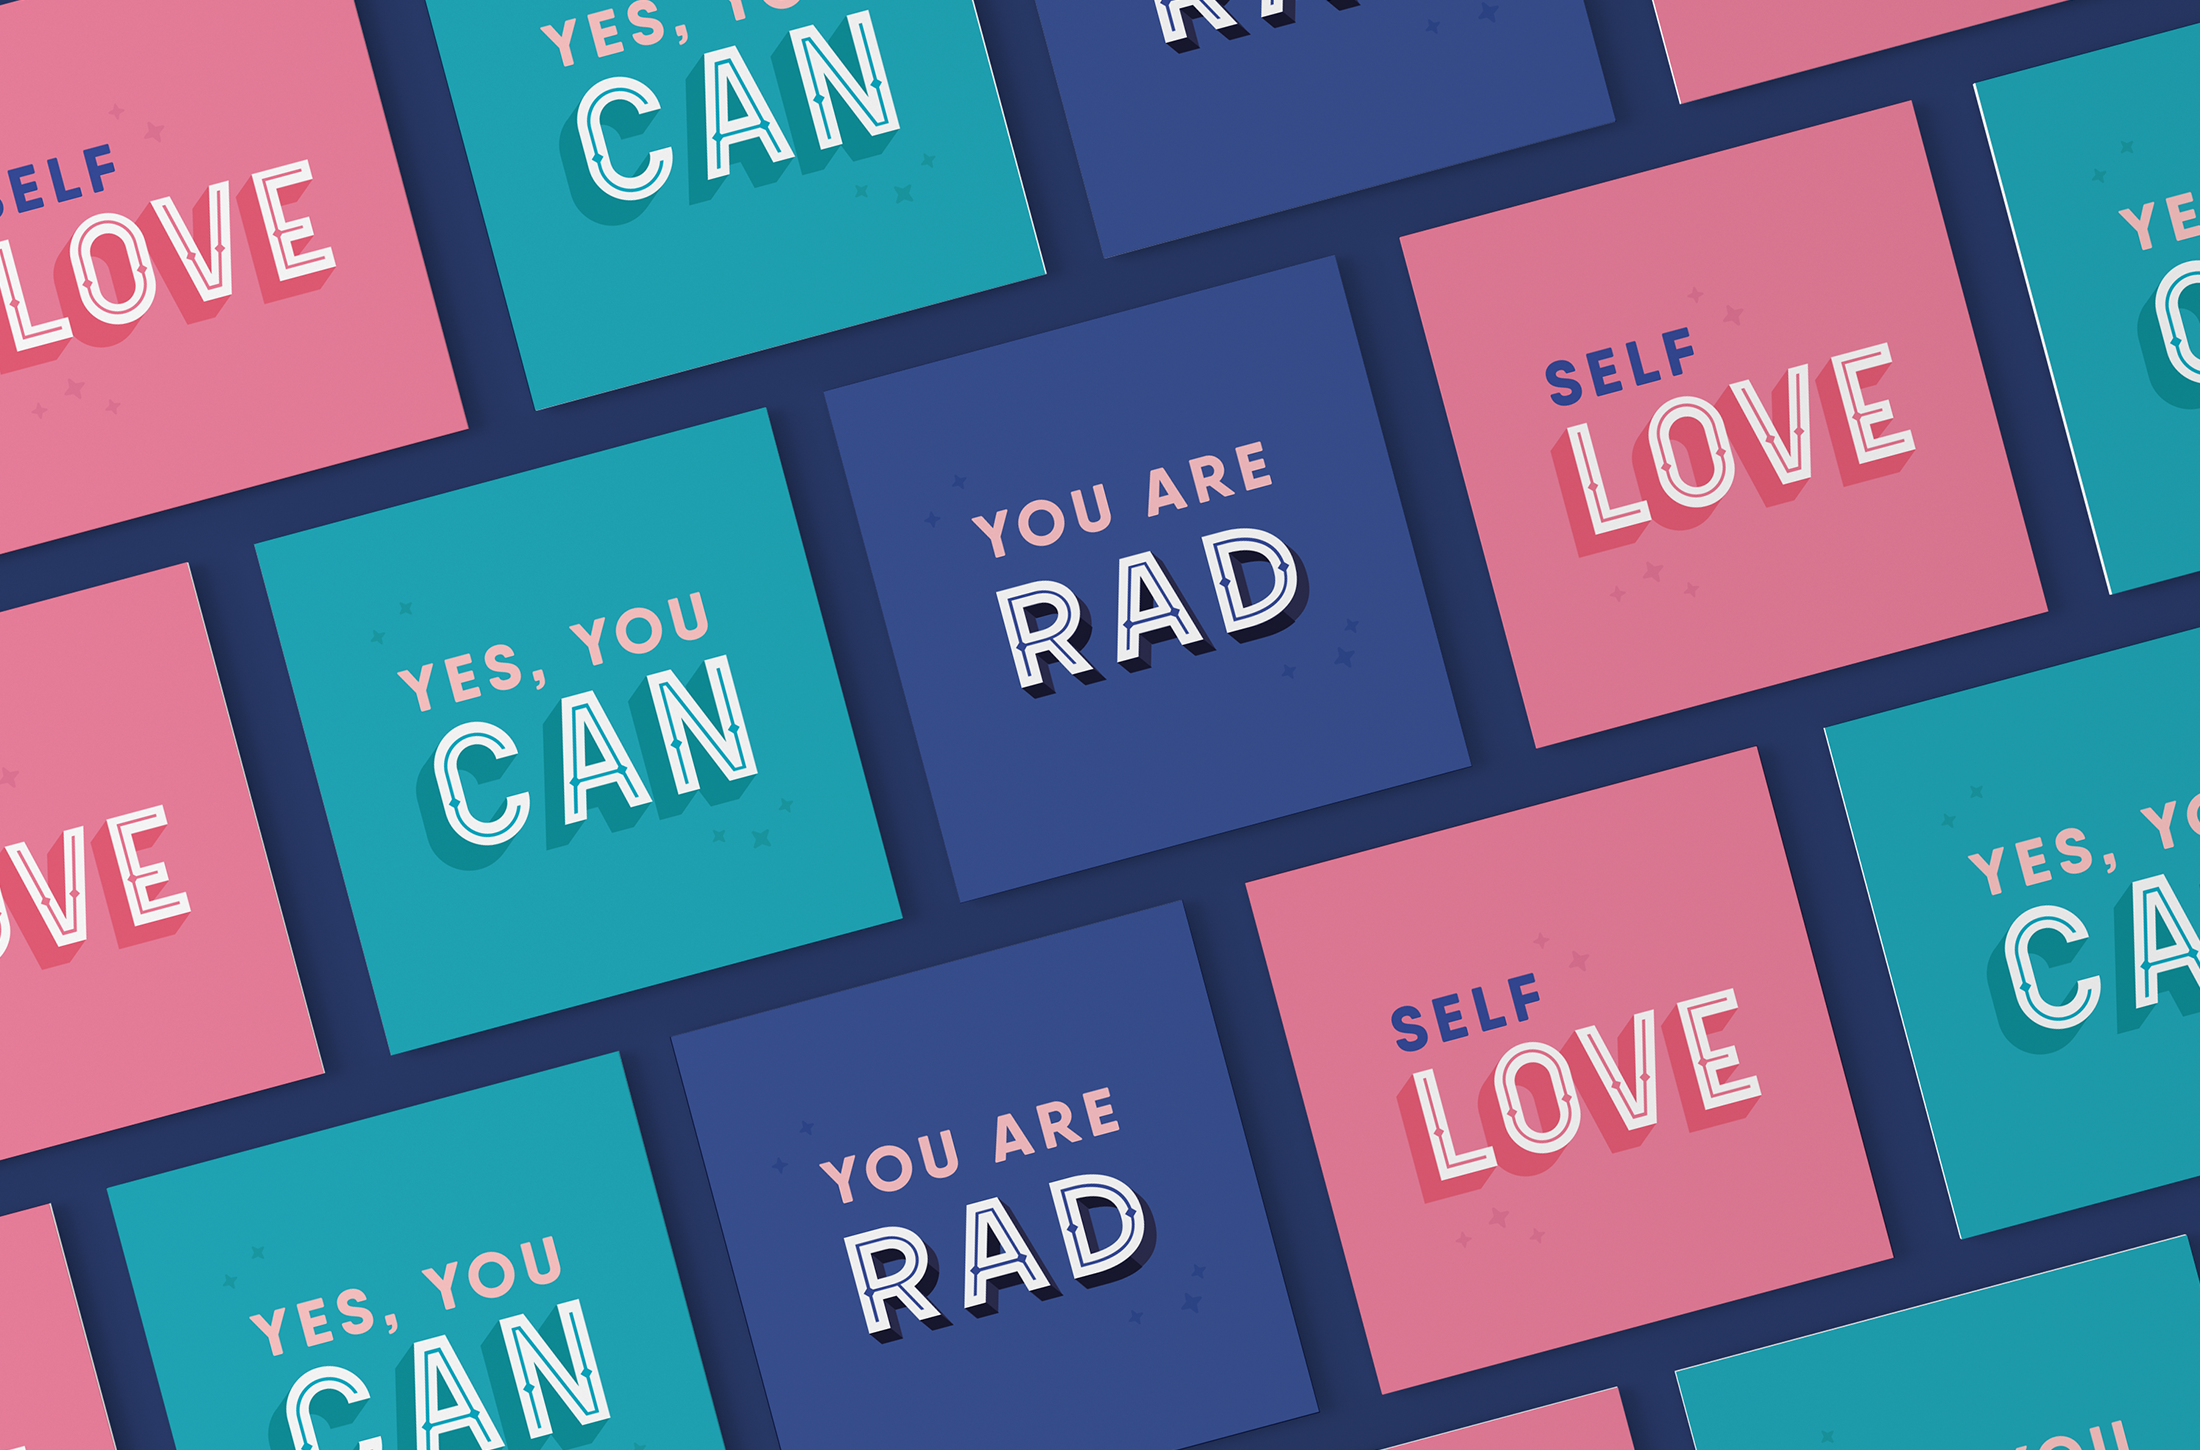 Business card design for My Radical Self, an online community and blog for women focusing on self-love, feminism and mindfulness - designed by Wiltshire-based graphic designer, Kaye Huett